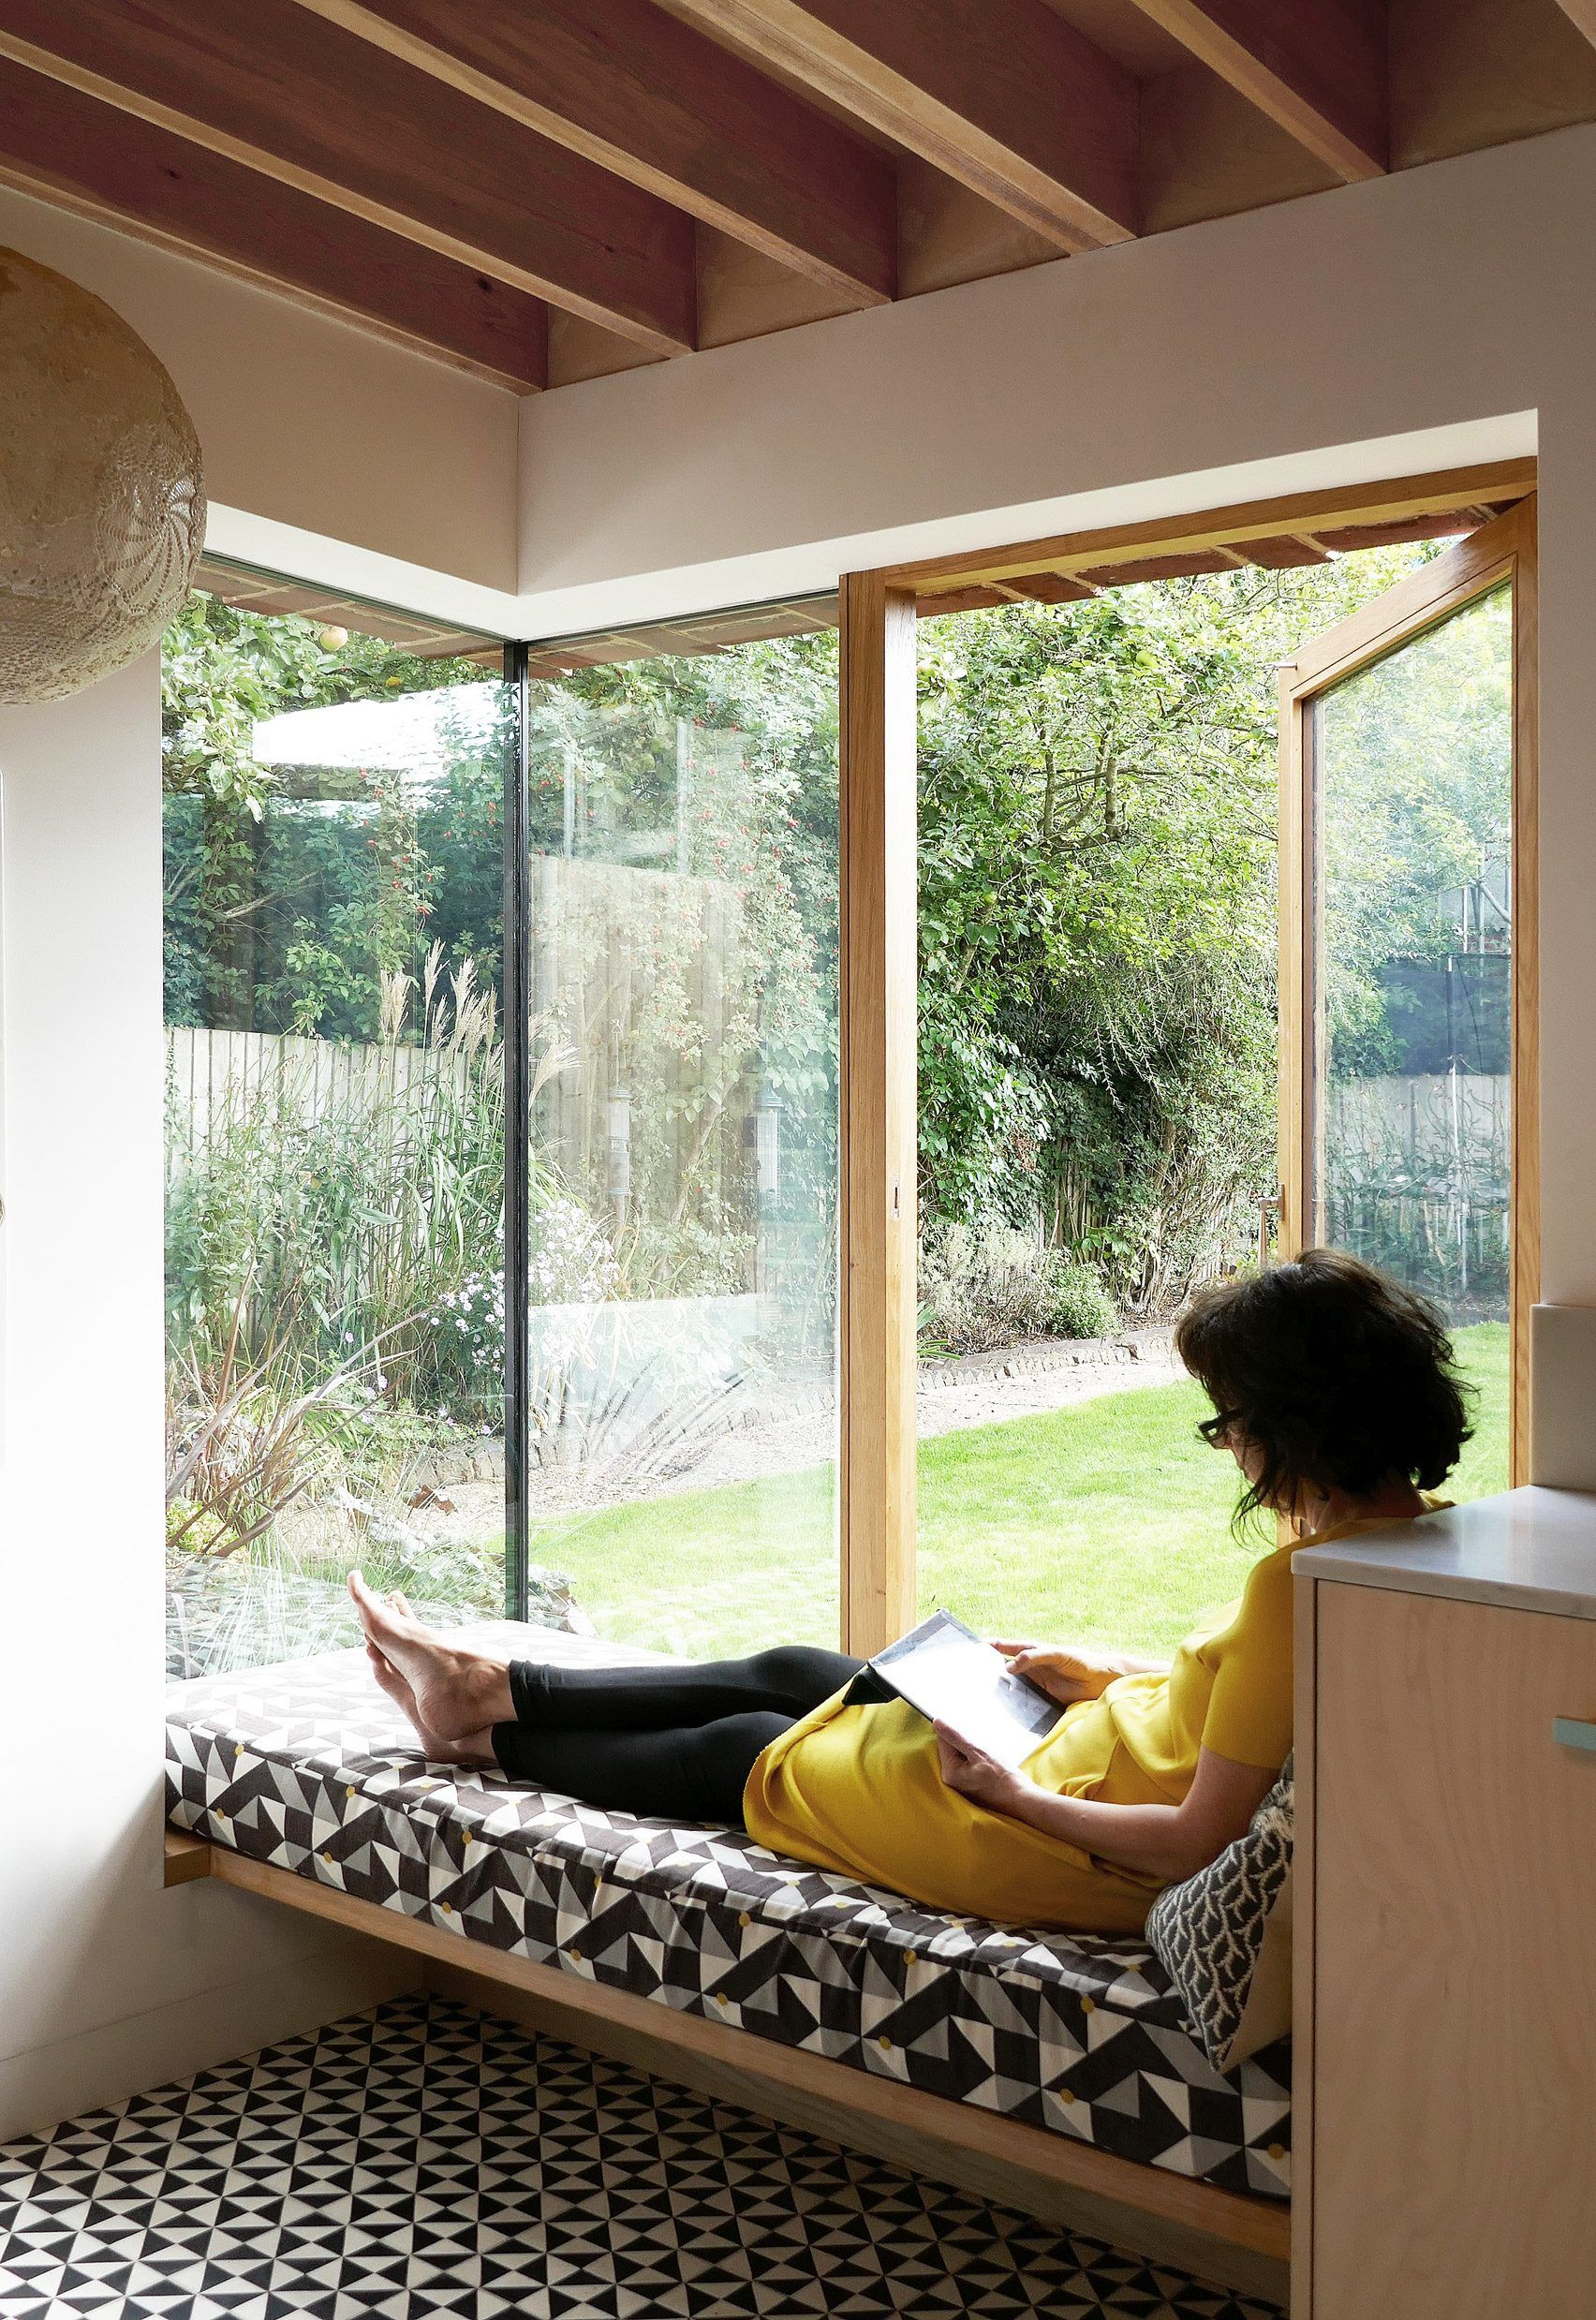 House box window design  pamphilon architects adds textured brick extension to house in